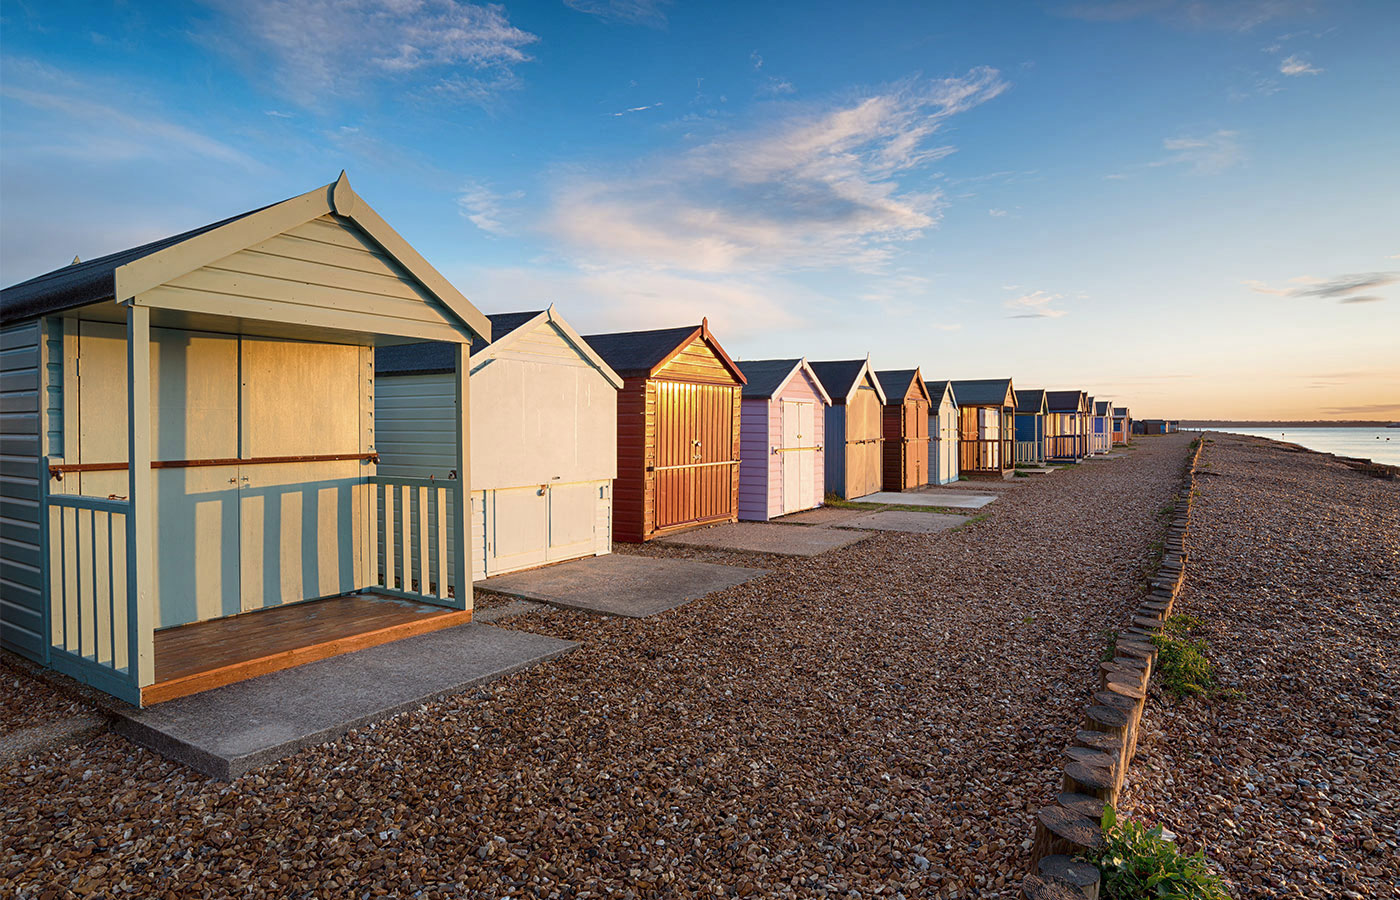 https://everystudent.co.uk/wp-content/uploads/2020/12/Every-Student-beach-huts-60.jpg